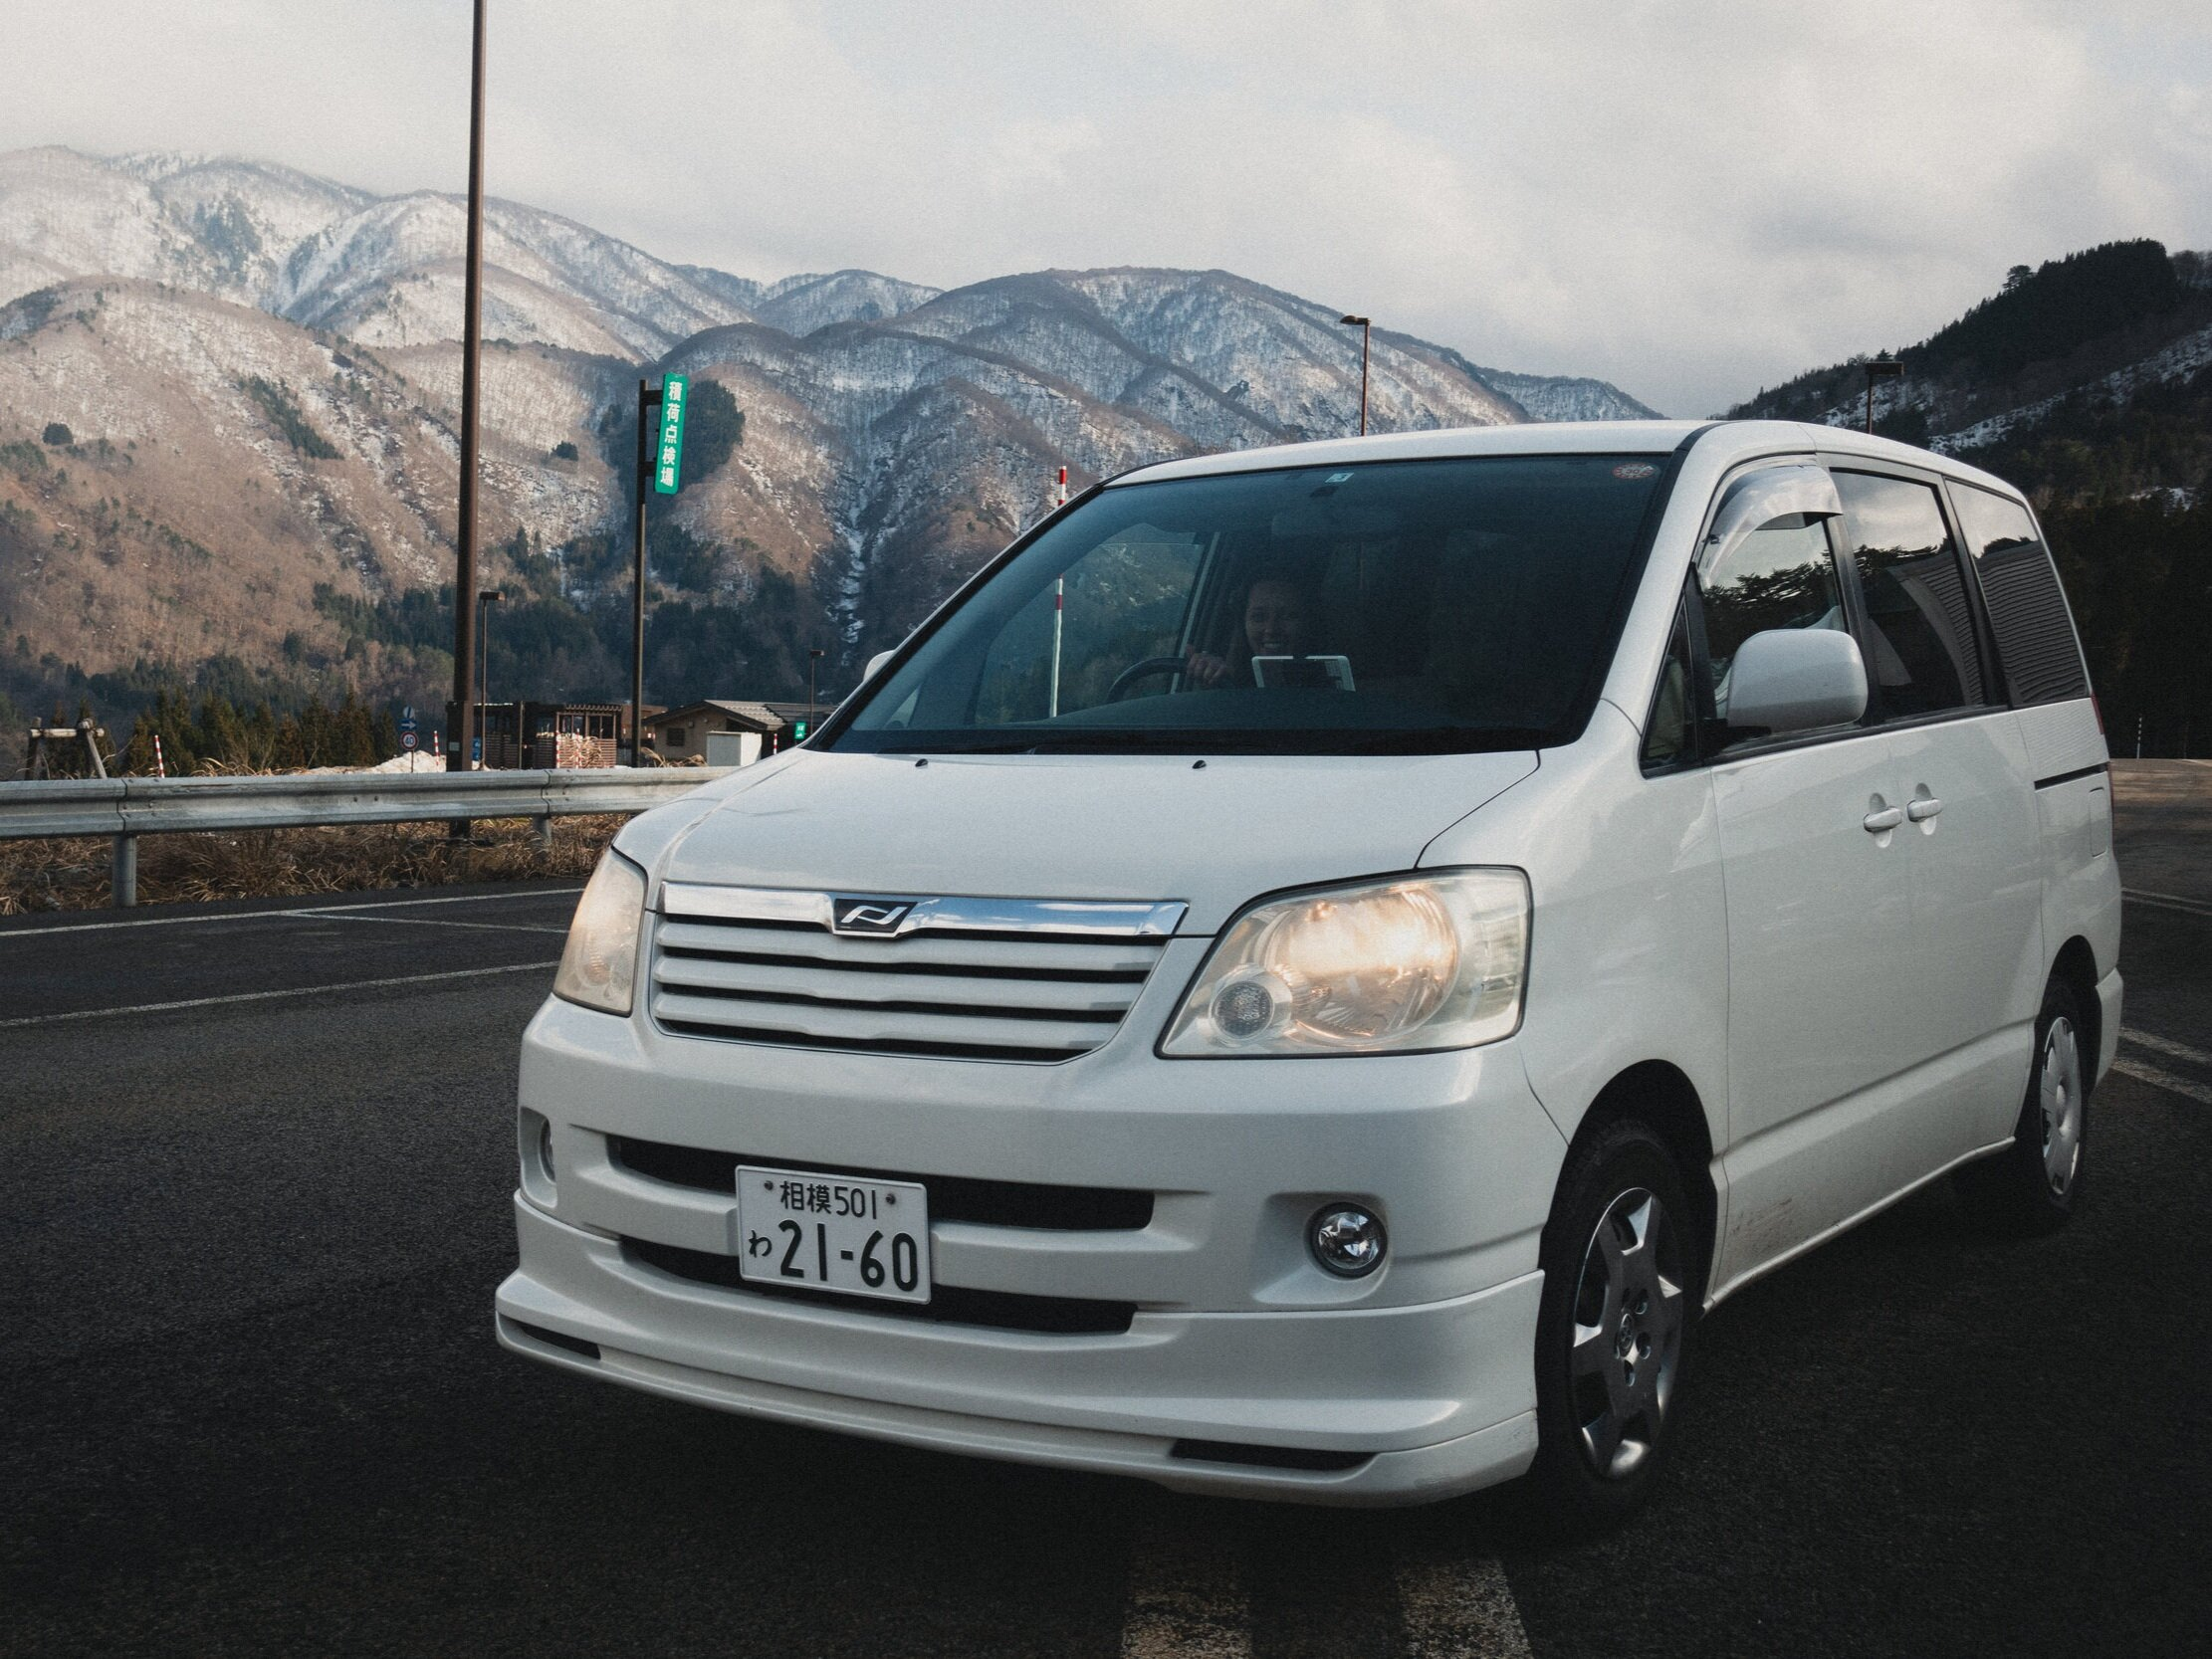 THIS is our van! You drive on the opposite side of the road in Japan, so the driver's side is also on the right side of the car.